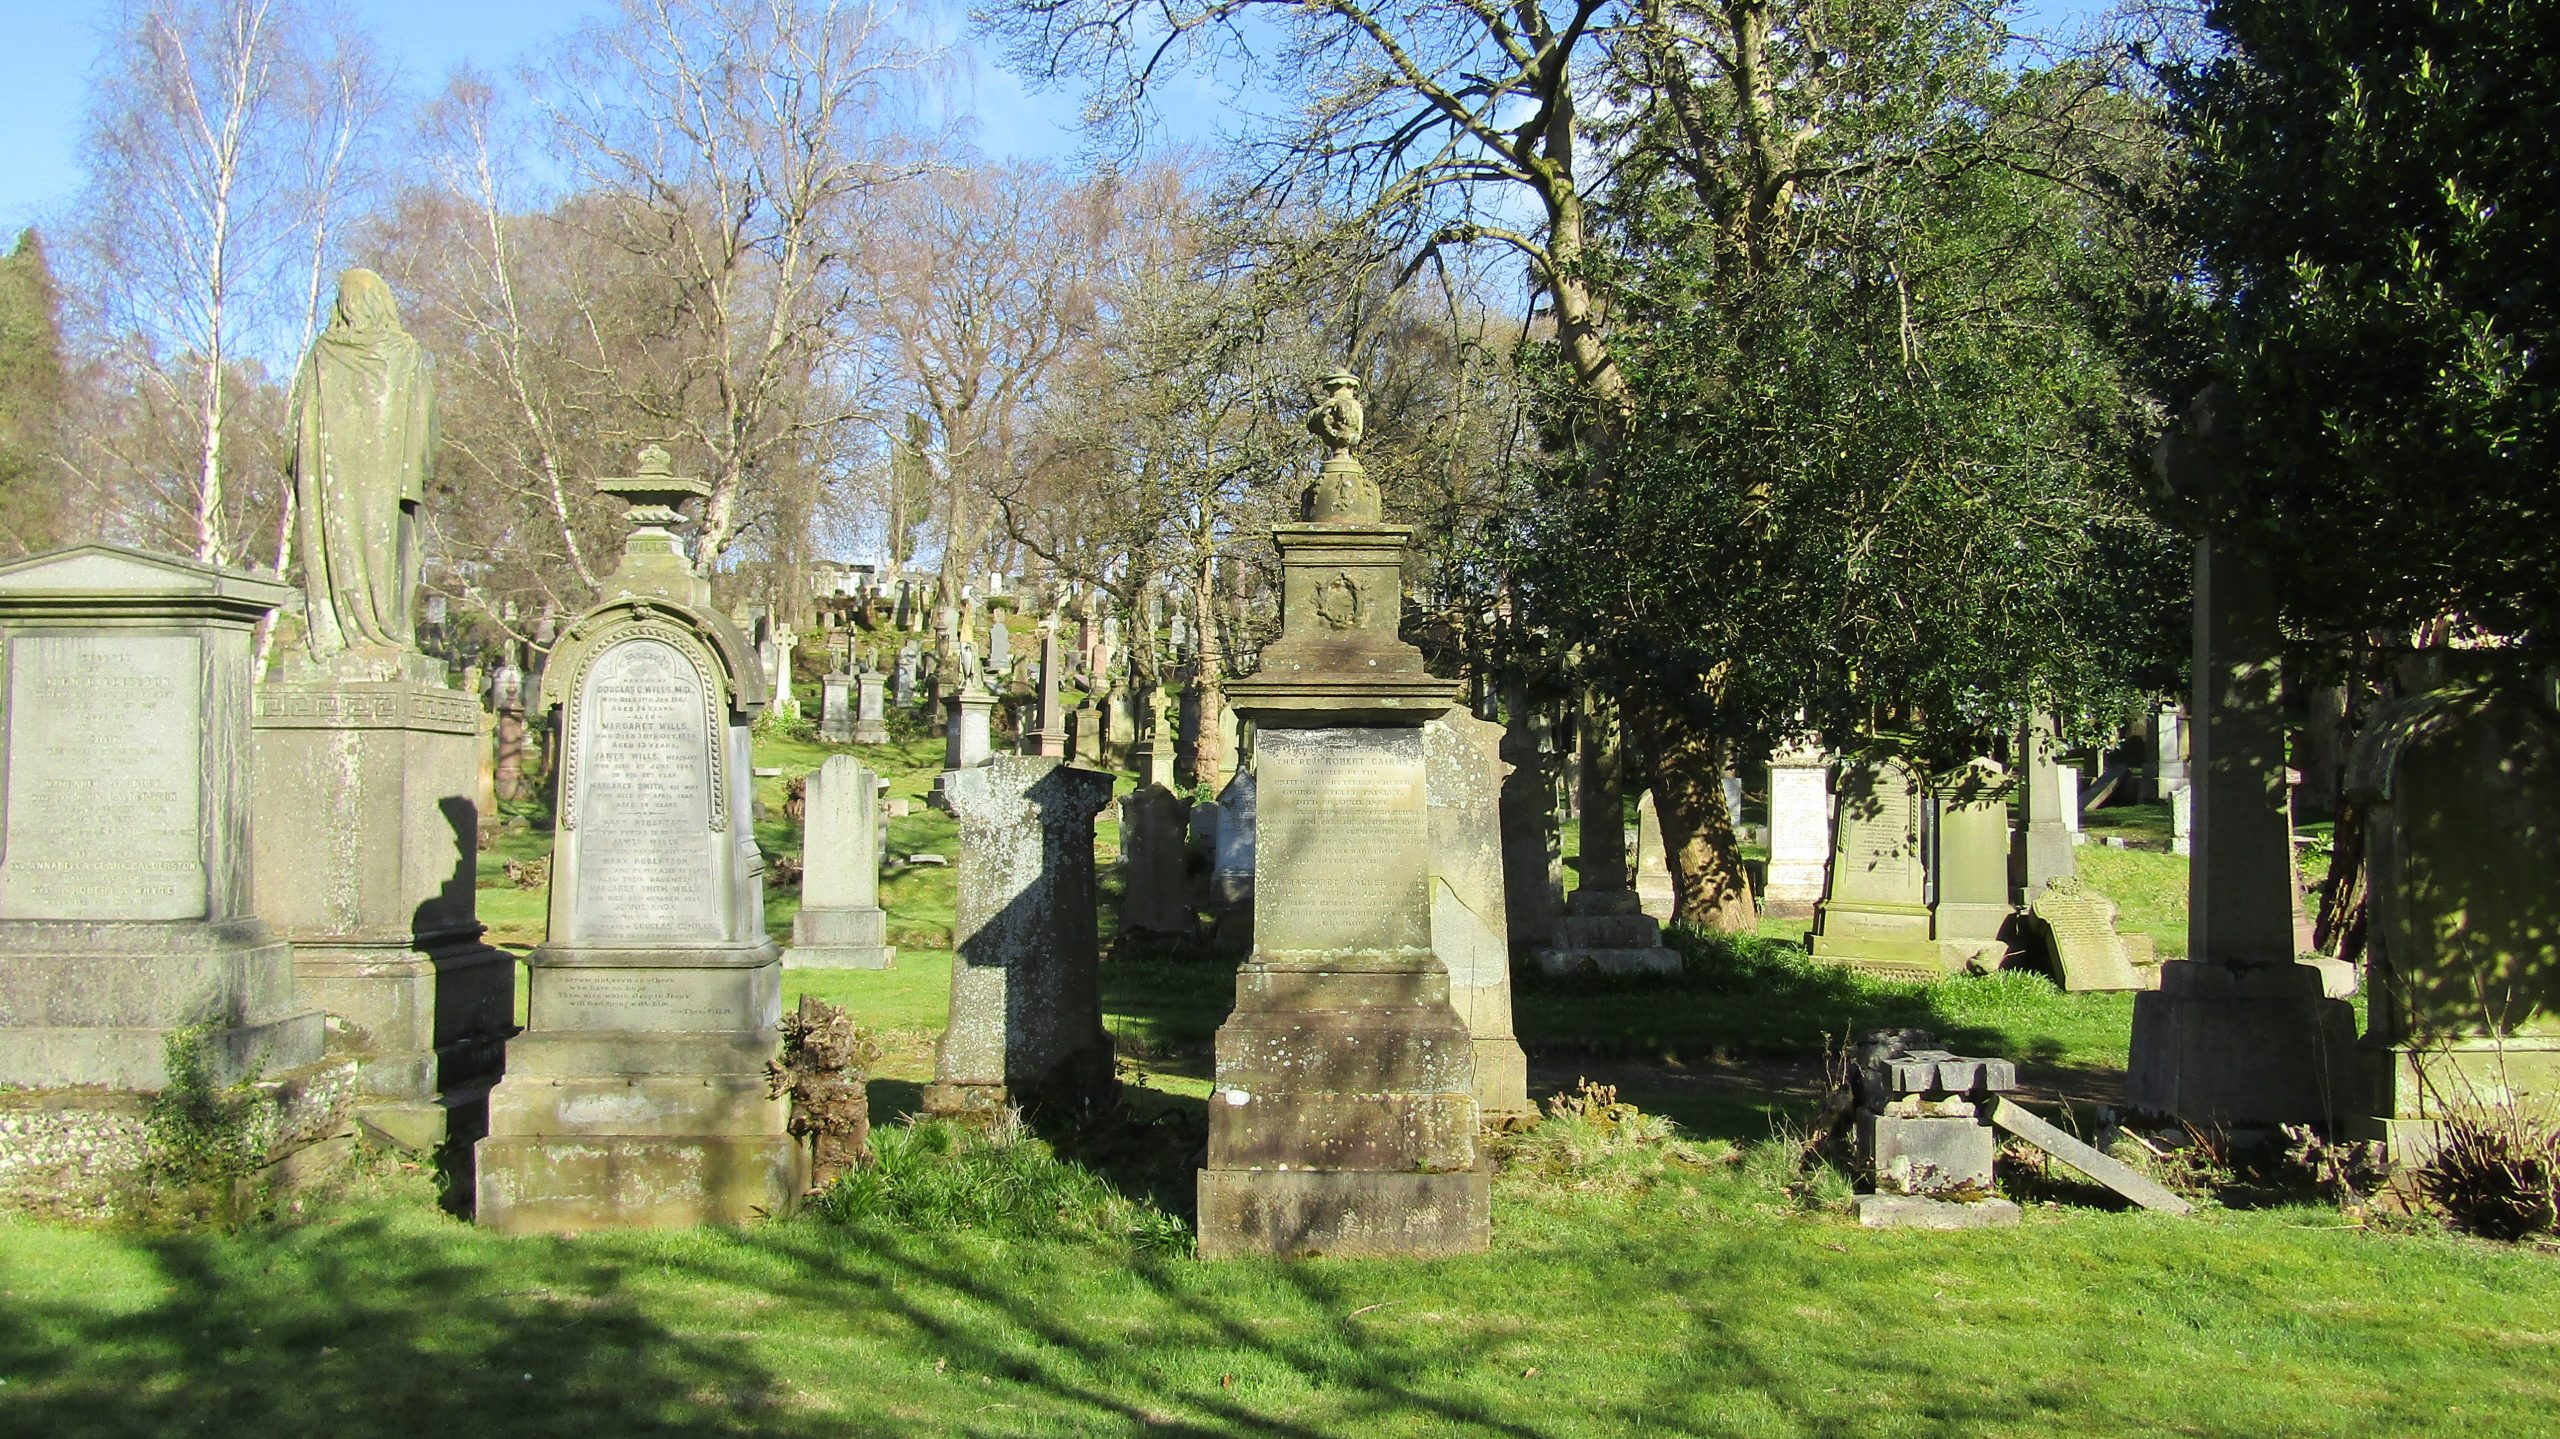 Woodside Cemetery Talk Wednesday 21st April, 7.30pm